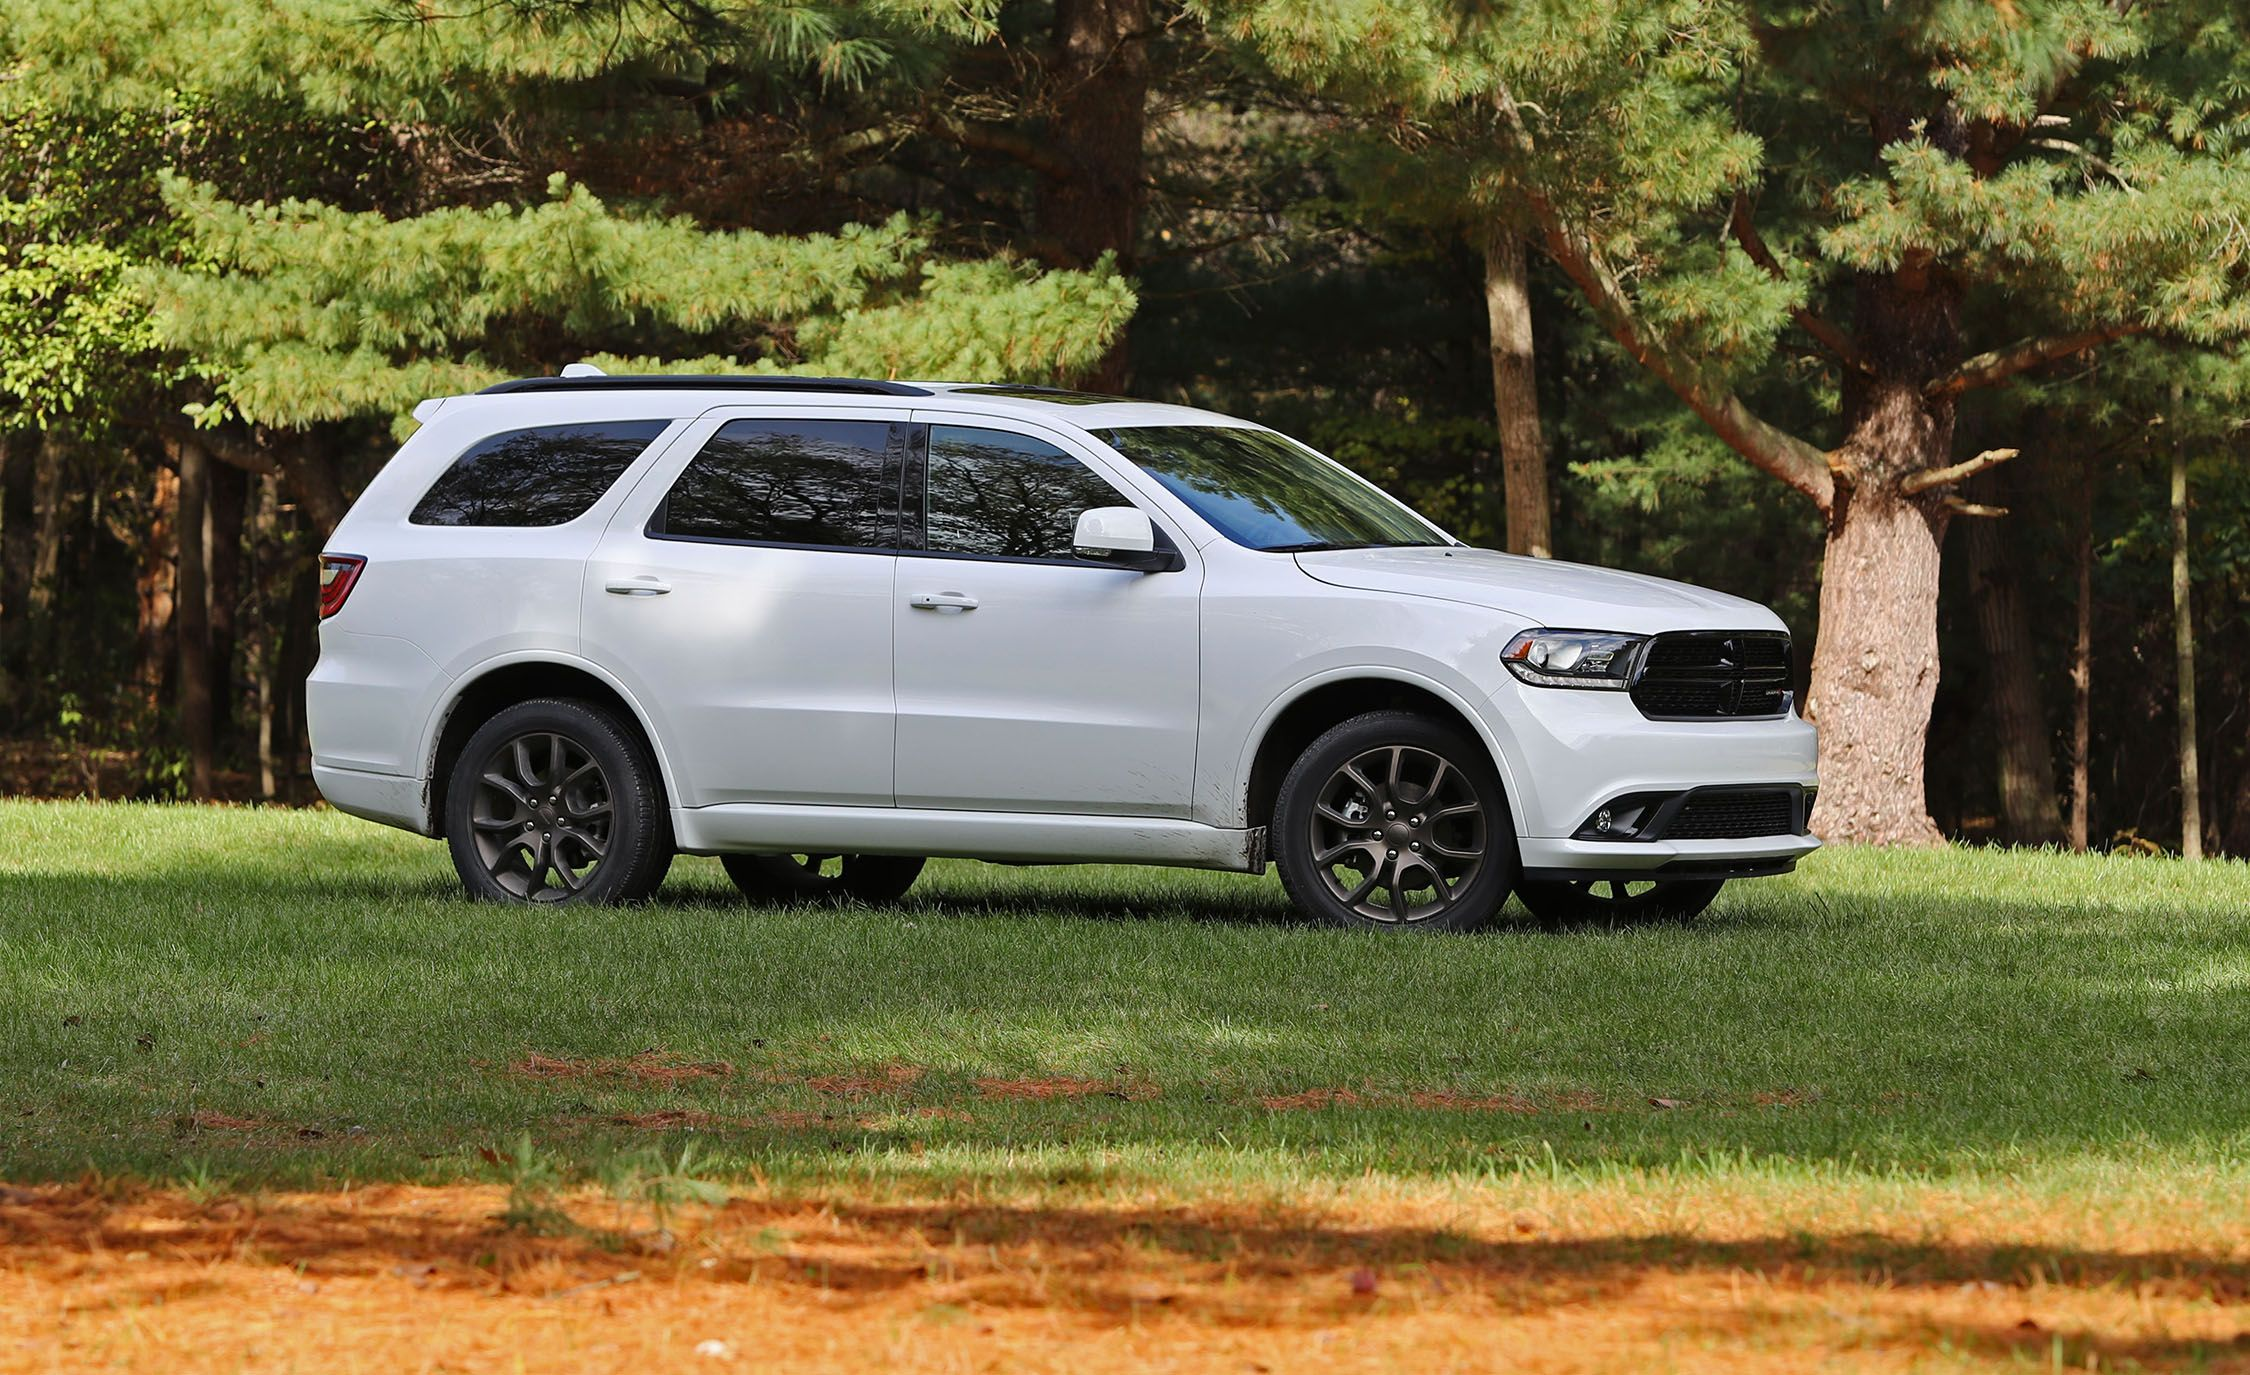 Journey 2017 Rt >> 2018 Dodge Durango | In-Depth Model Review | Car and Driver